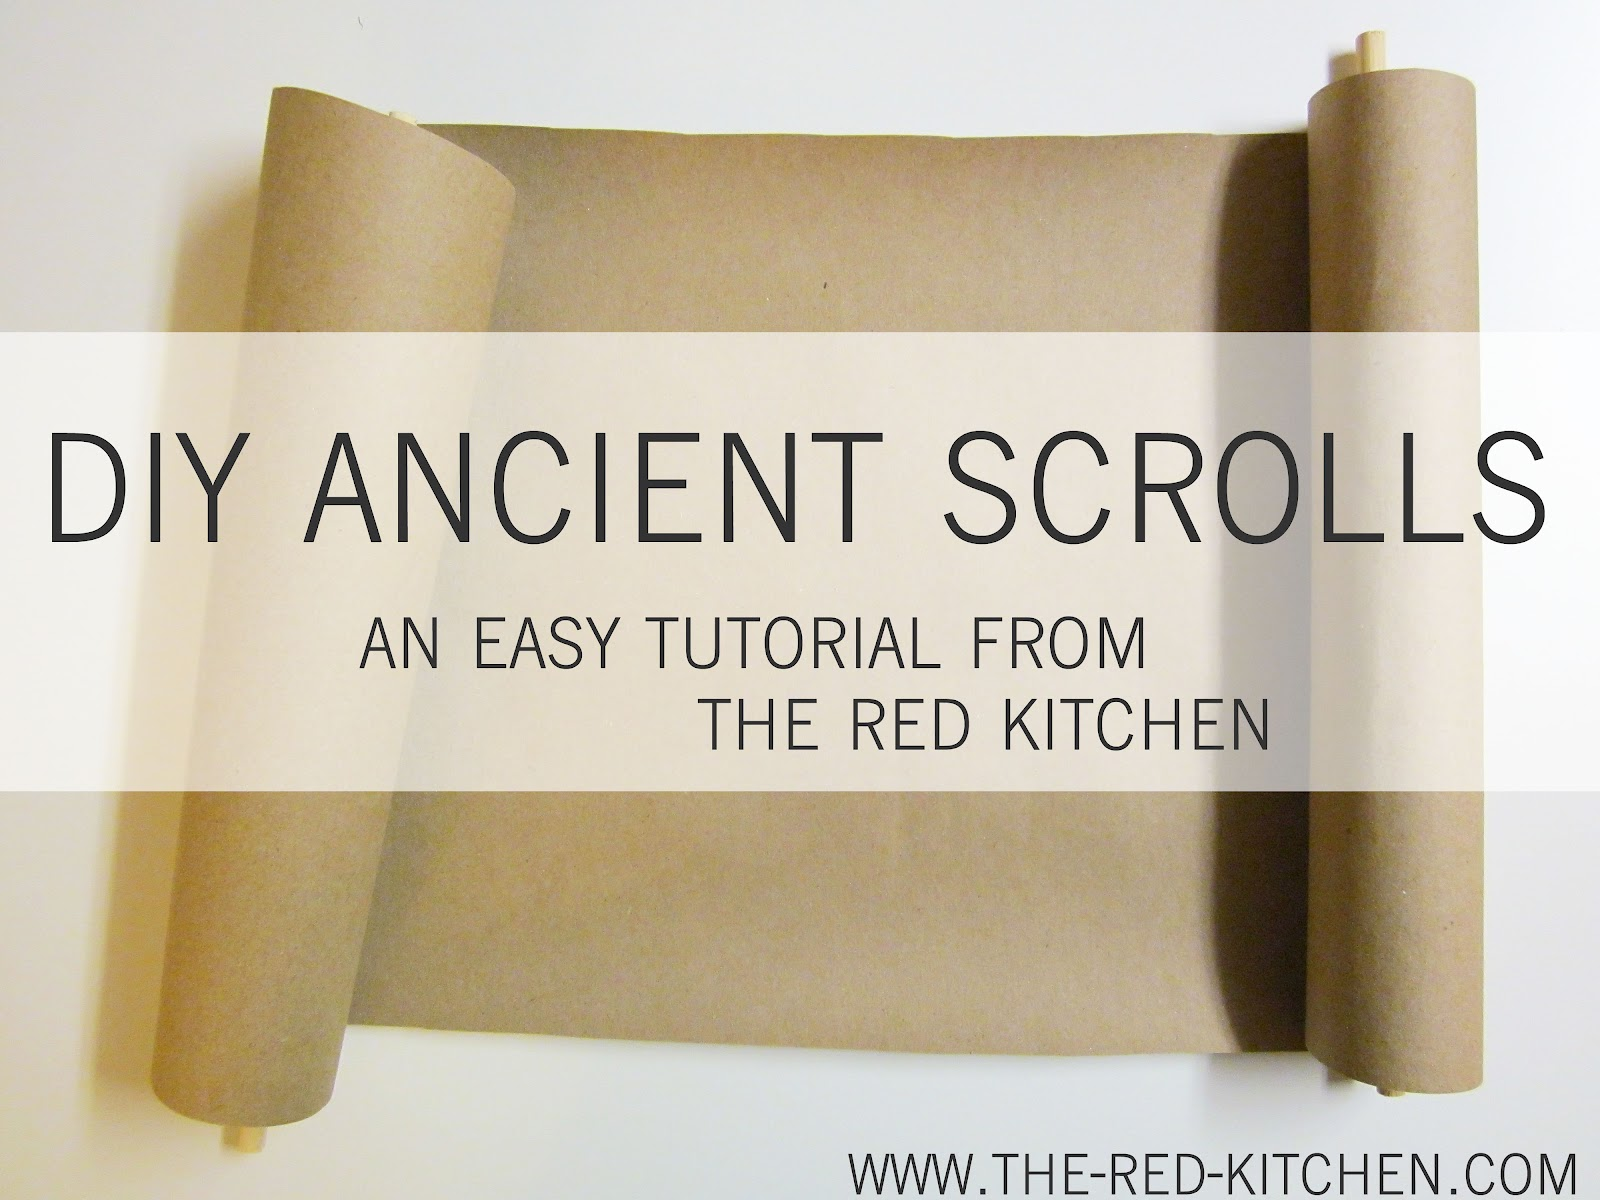 The red kitchen diy ancient scrolls tutorial diy ancient scrolls tutorial solutioingenieria